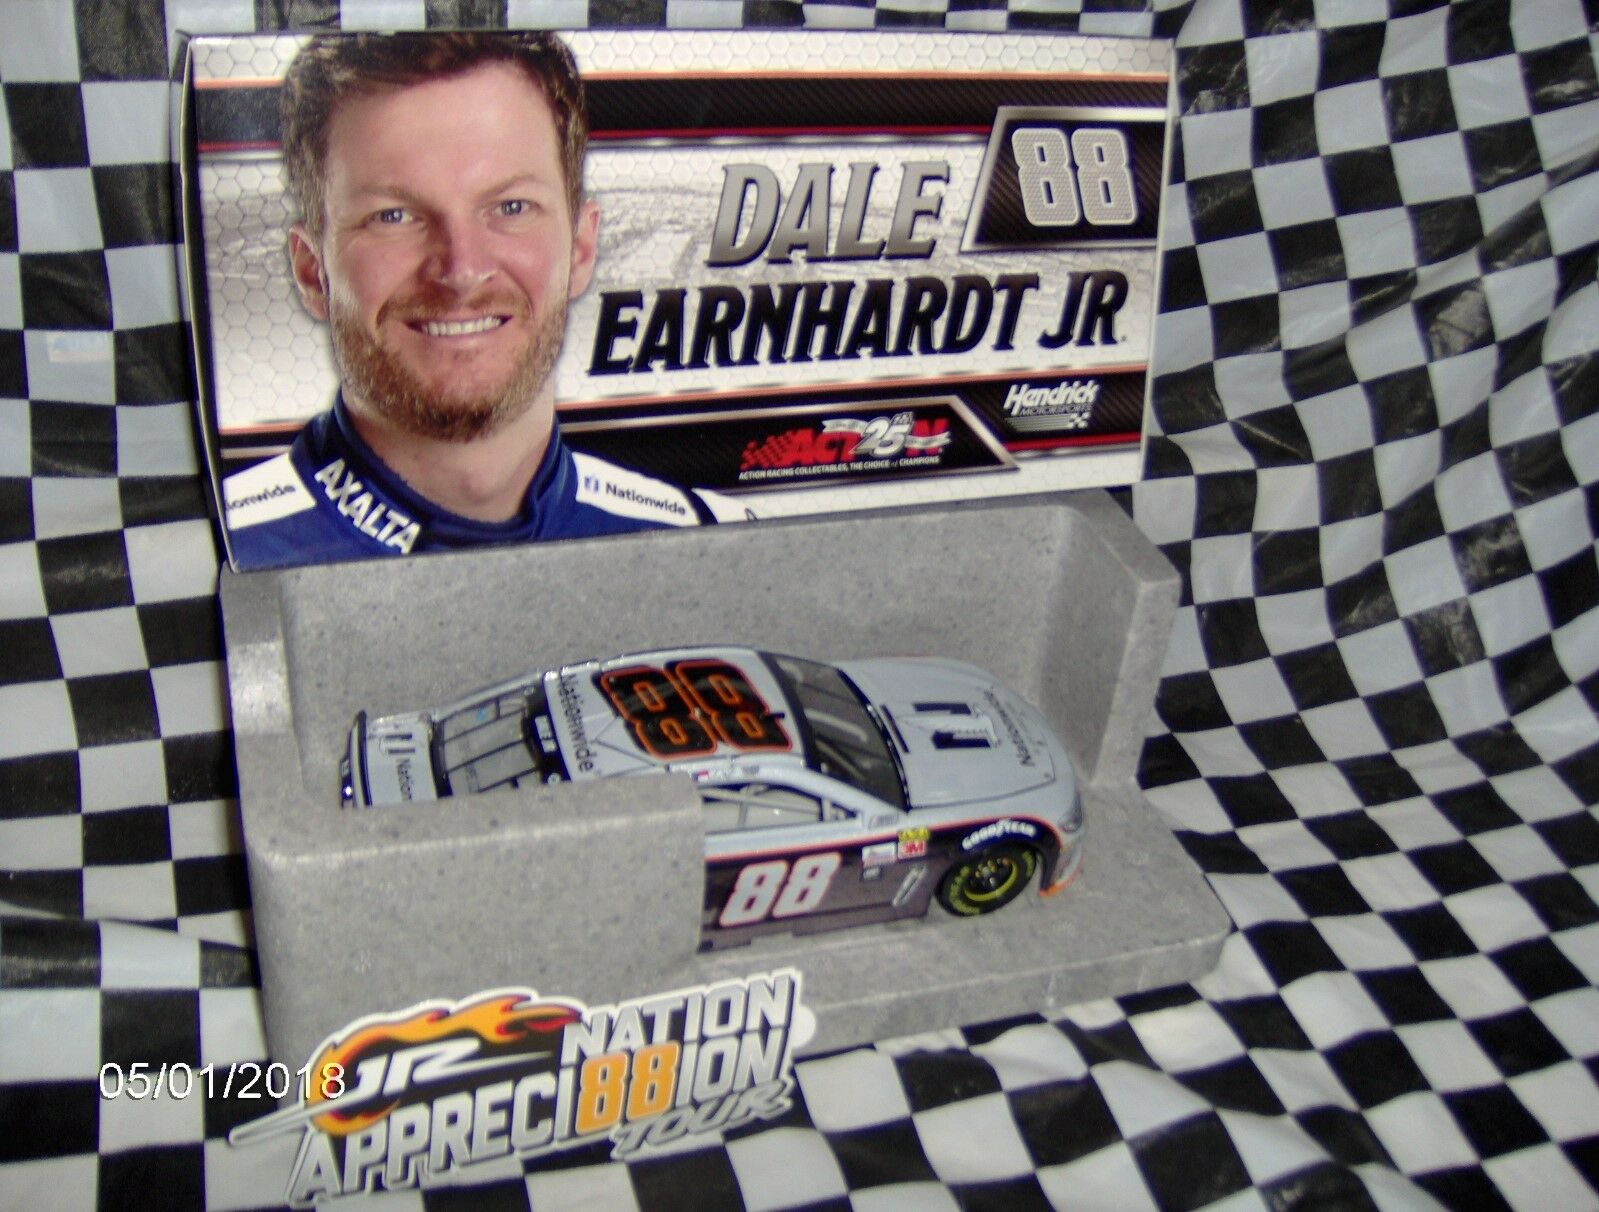 2017 Dale Earnhardt Jr.   88 Nationwide grigio Ghost Color Chrome 1/24th